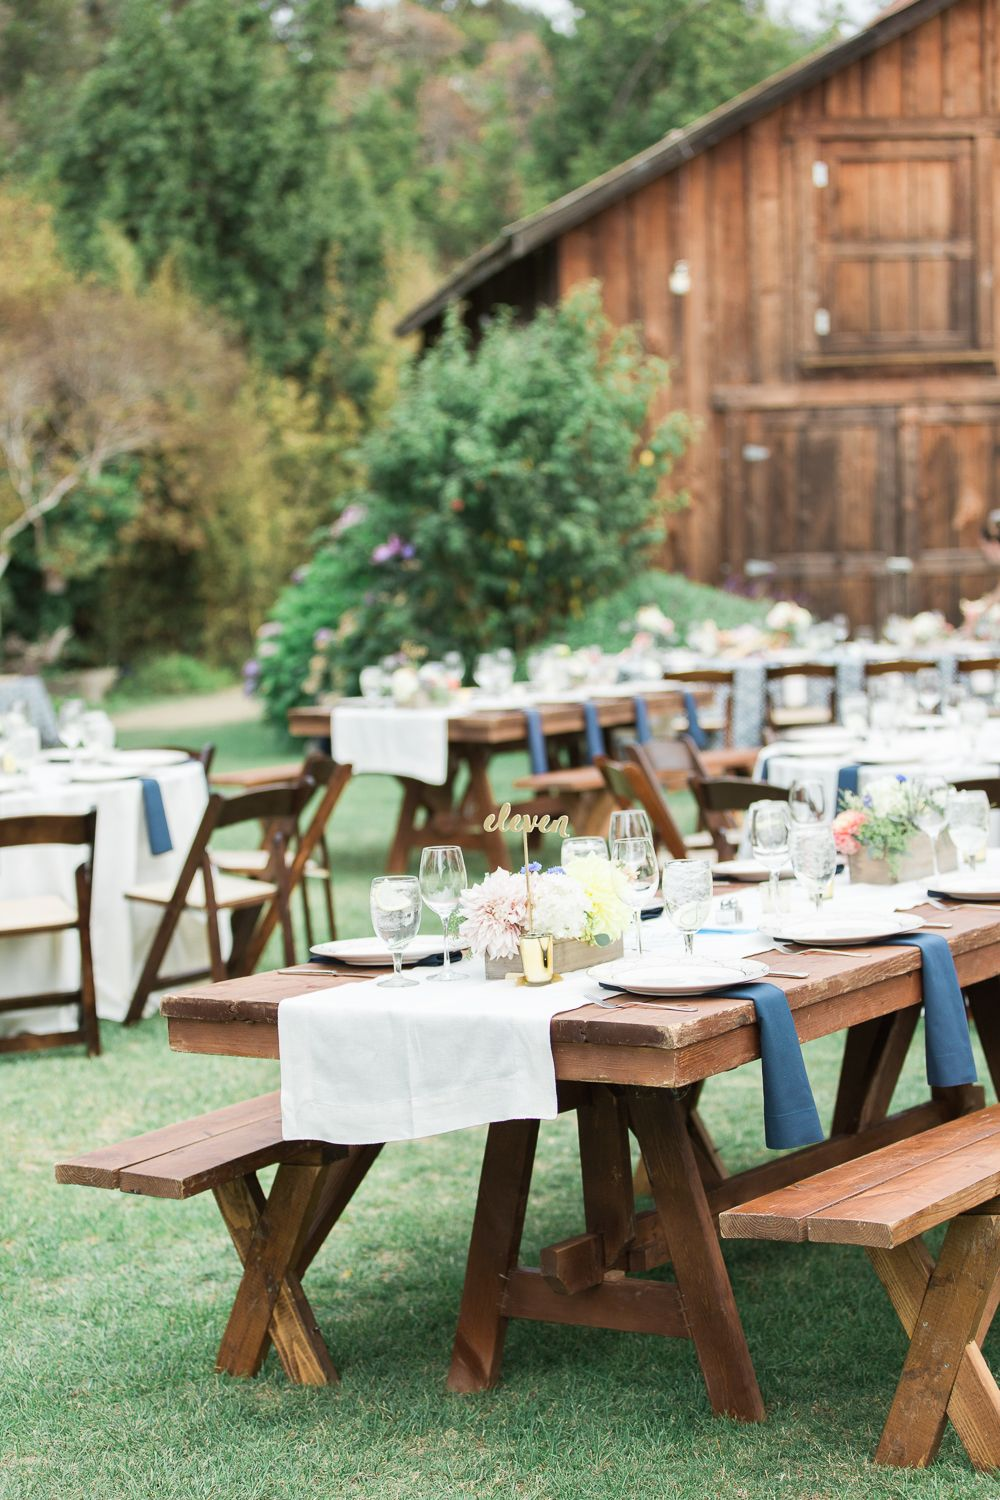 There's So Much in this California Garden Wedding We Want To Share! is part of garden Seating Picnic Tables - Seriously, narrowing down images to show off for you was really difficult at this wedding  Check it out here and see even more in the full gallery!